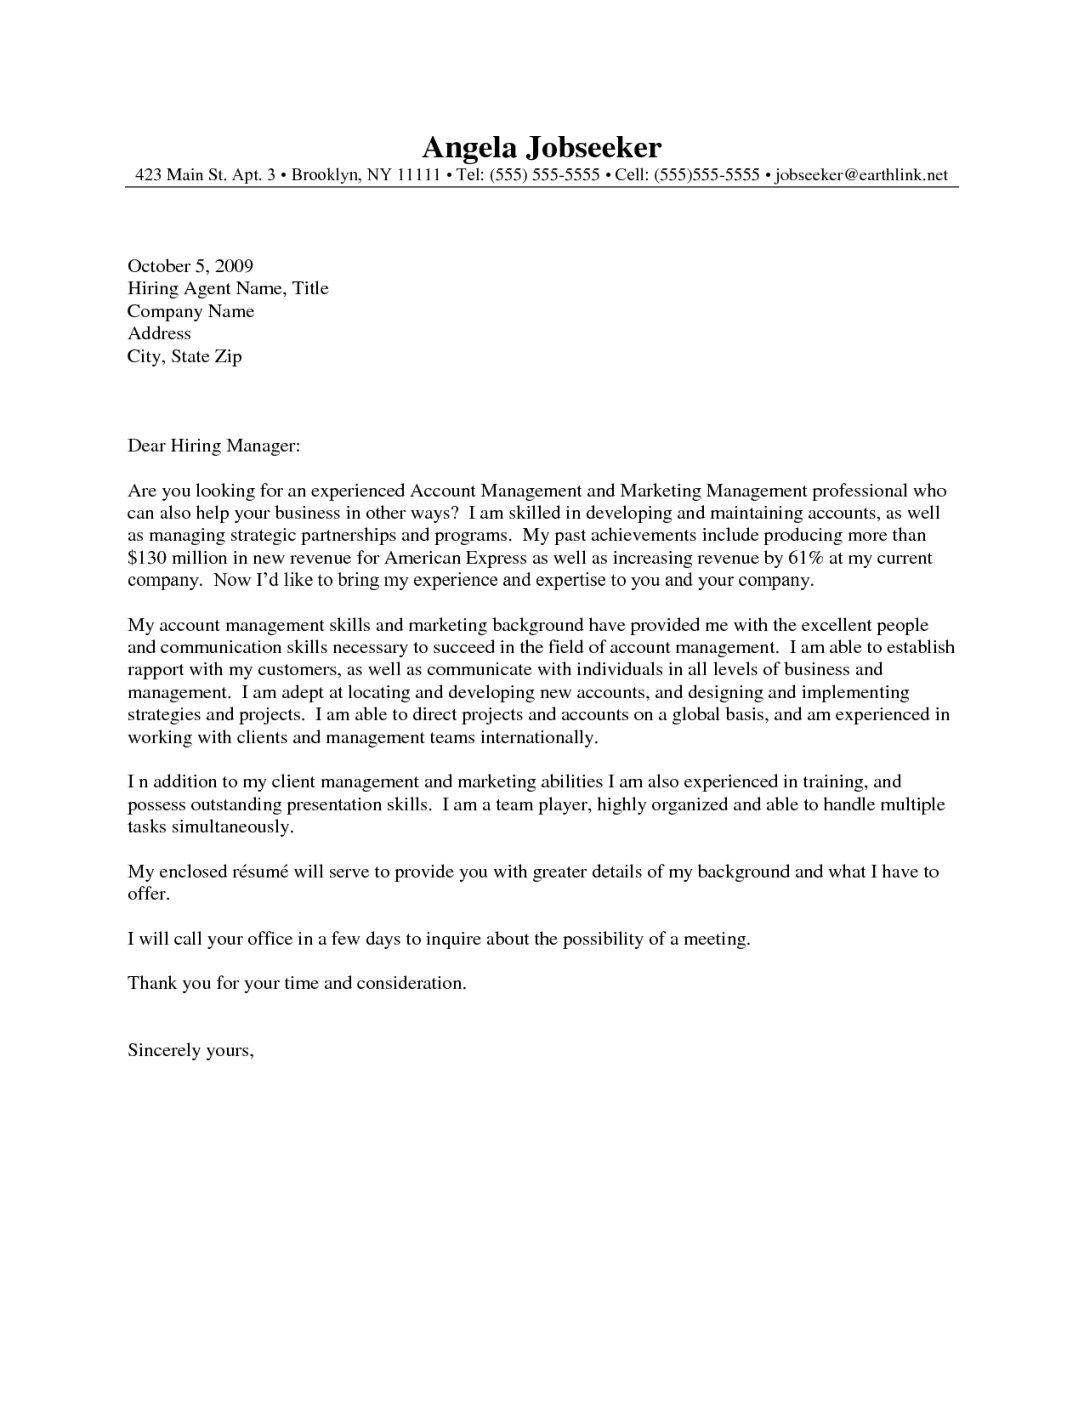 Cover Letter Template Usc Resume Examples Cover Letter For Resume Resume Cover Letter Examples Cover Letter Example Templates